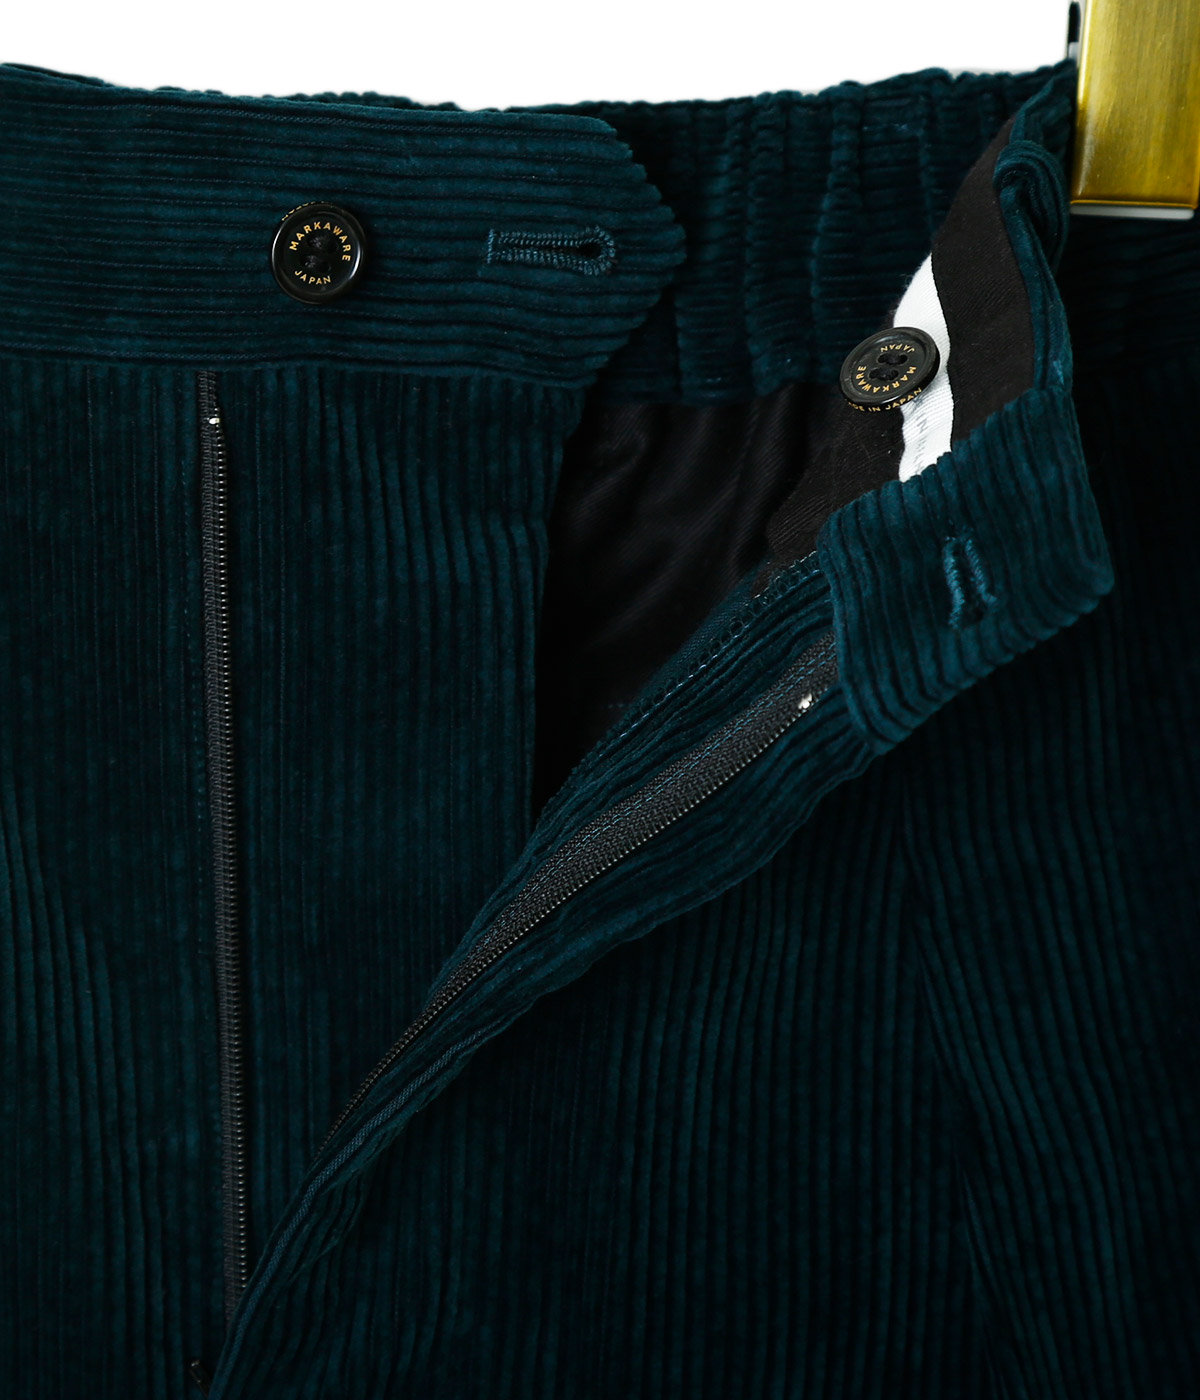 【予約】PLEATED FRONT PEGTOP -ORGANIC COTTON SURVIVAL CORDUROY-